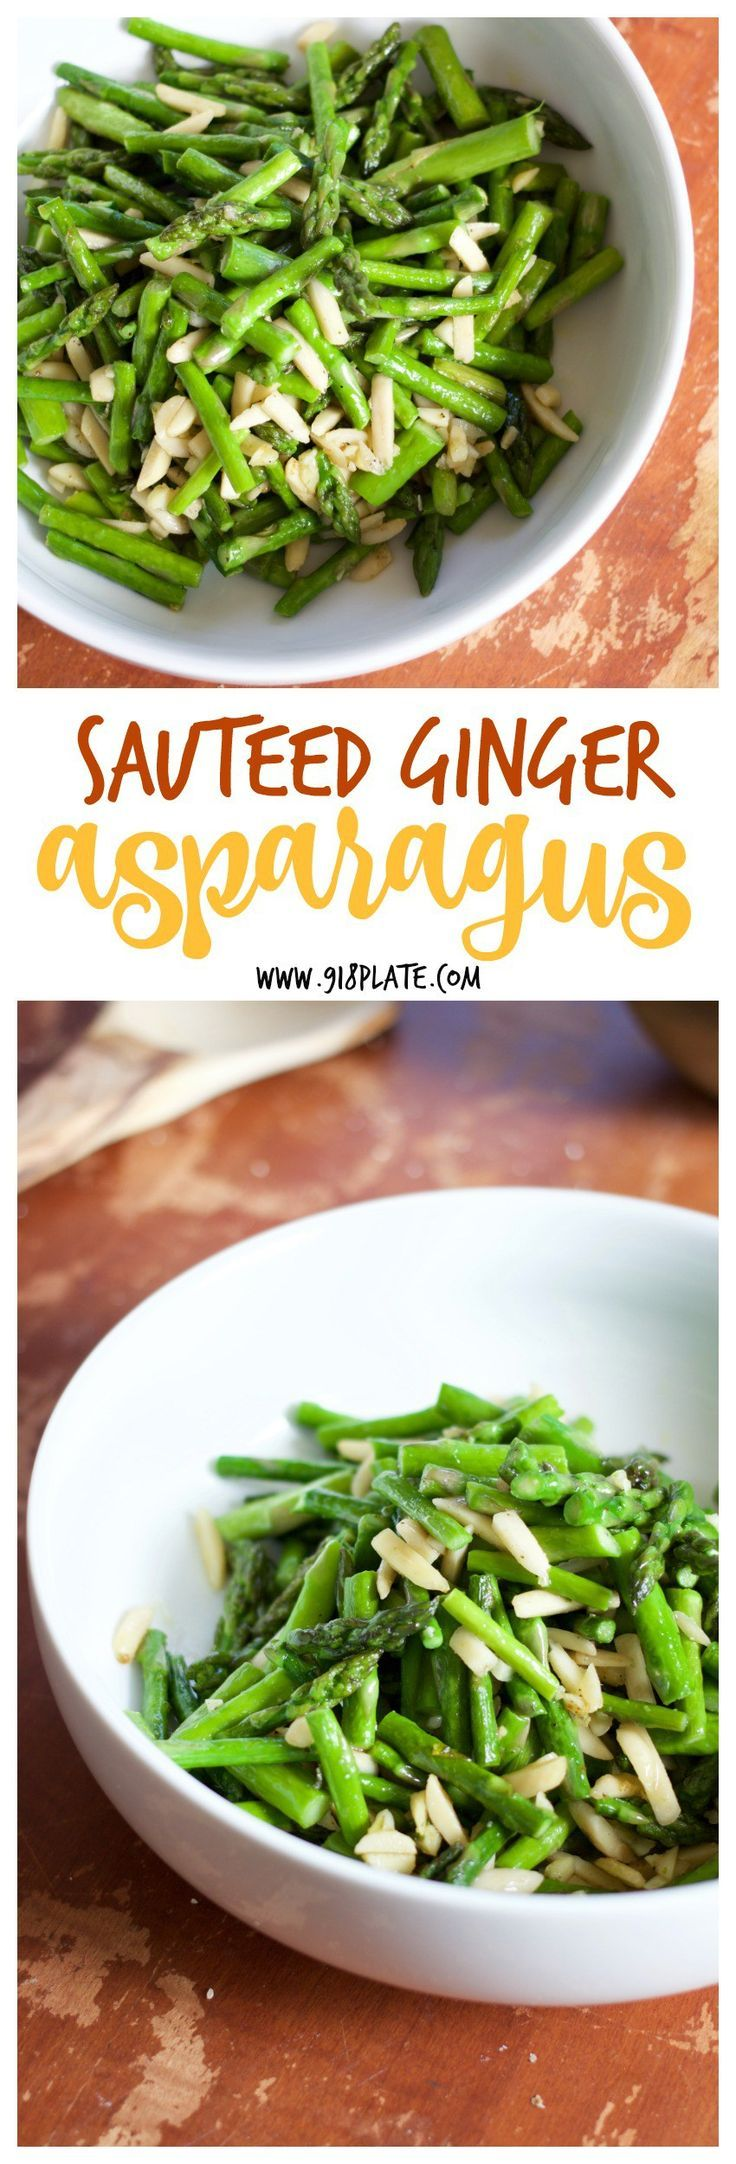 This sauteed ginger asparagus is a quick and easy side that is great on its own or mixed into your favorite dishes!